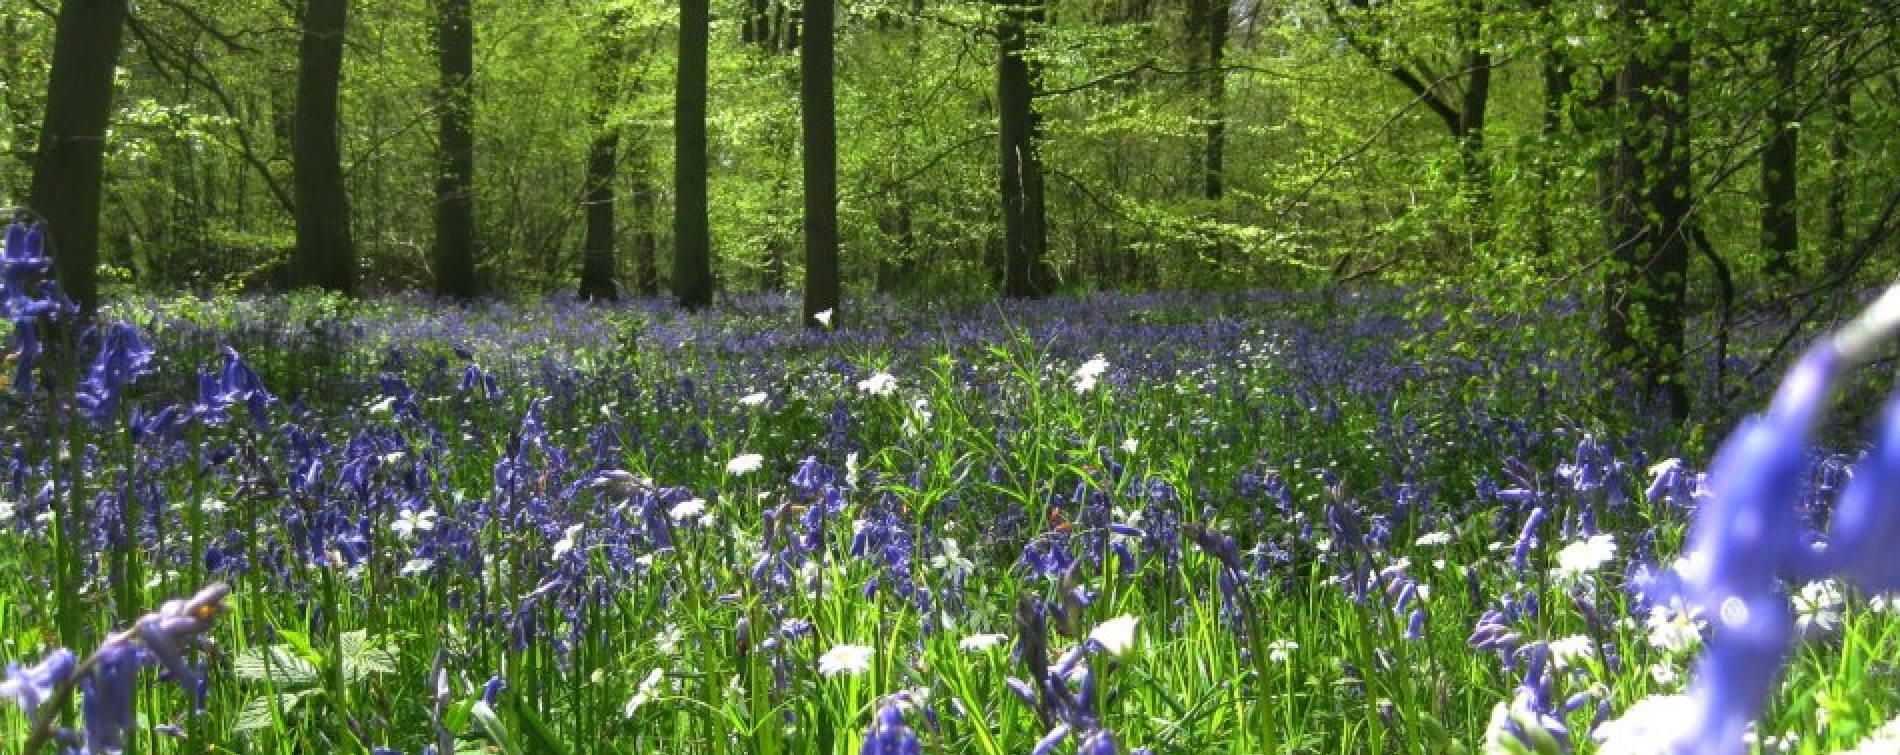 Soulton Bluebell Woods